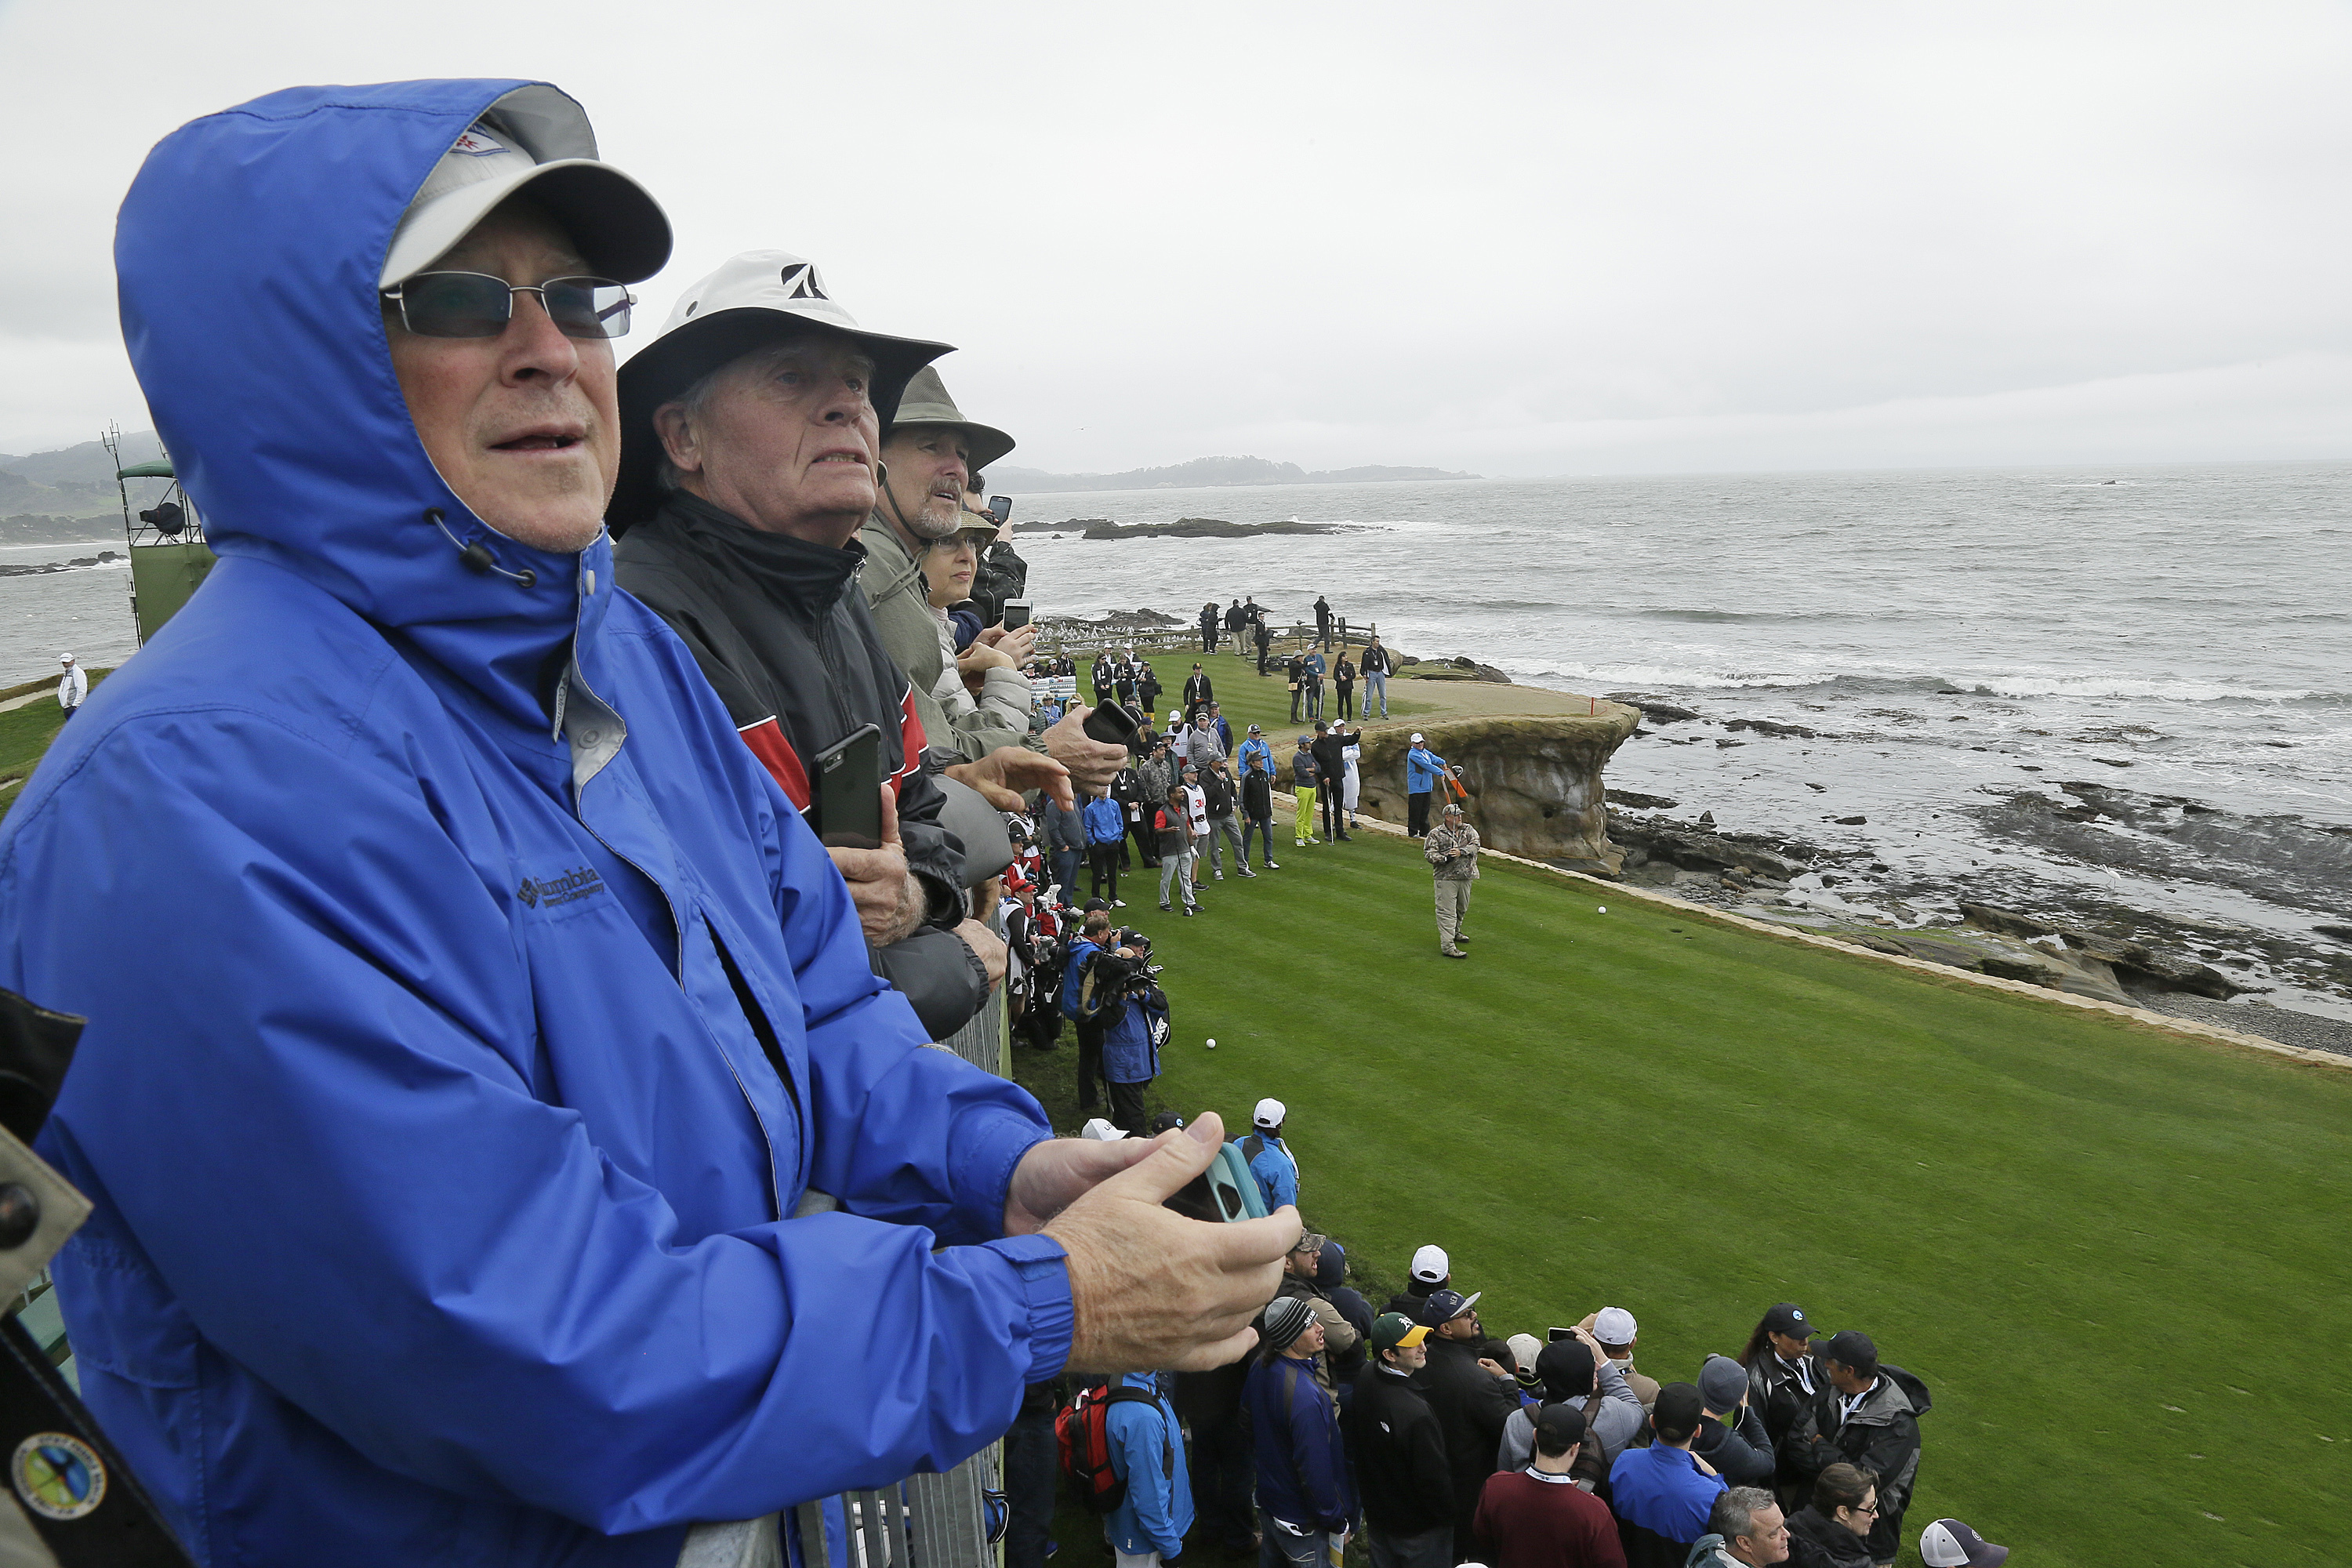 Spectators watch Daniel Lawrence Whitney, better known as, Larry the Cable Guy, hit from the 18th tee during the celebrity challenge event of the AT&T Pebble Beach National Pro-Am golf tournament Wednesday, Feb. 8, 2017, in Pebble Beach, Calif. (AP Photo/